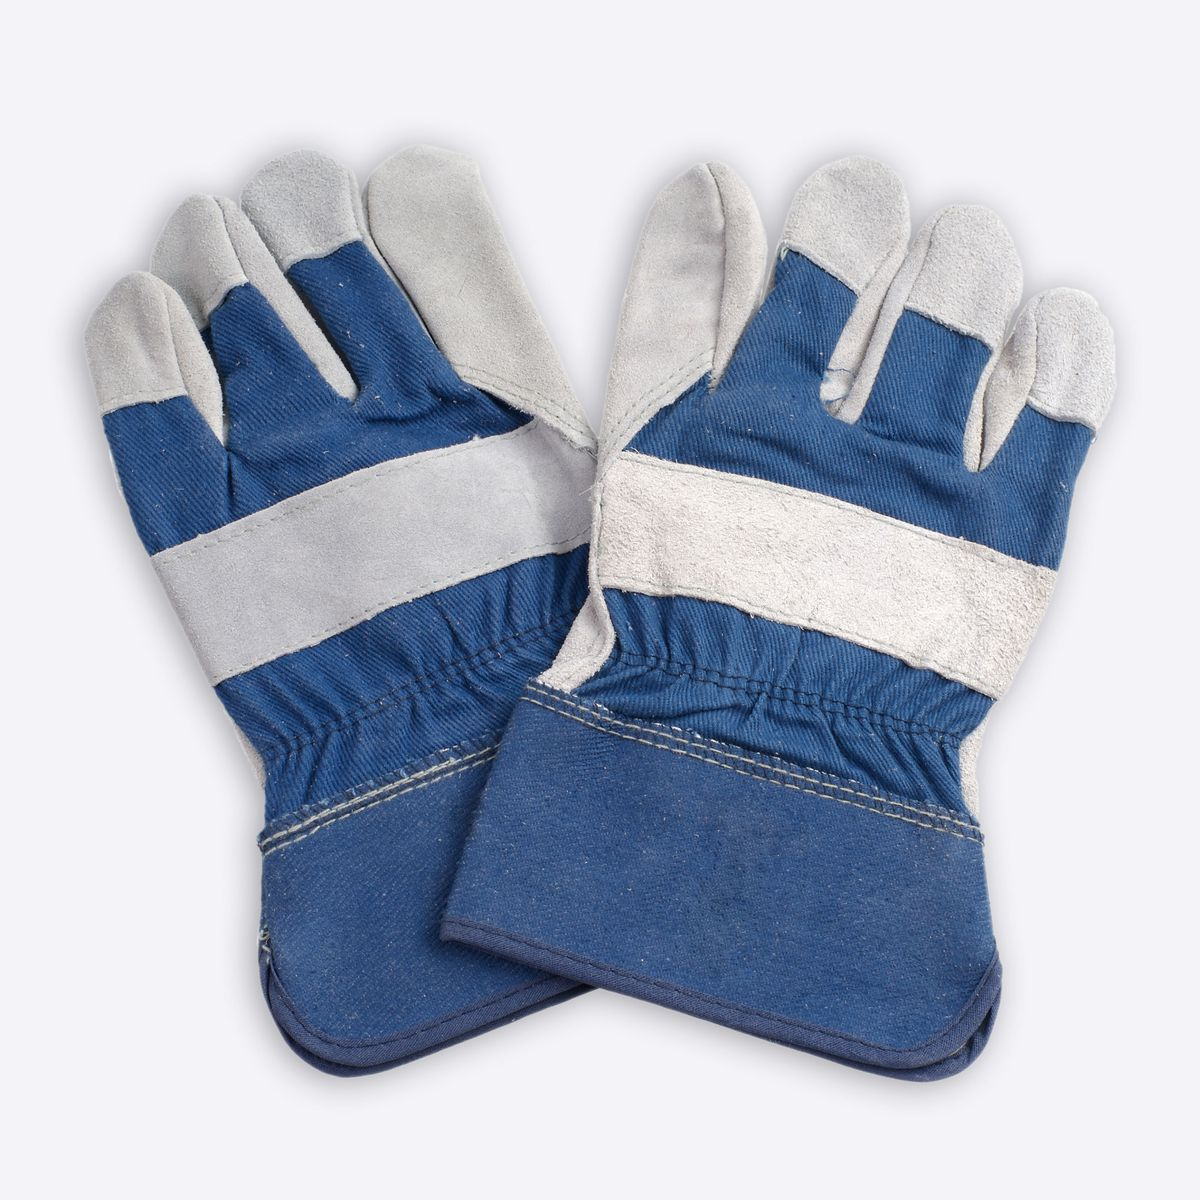 Blue and gray leather work gloves.